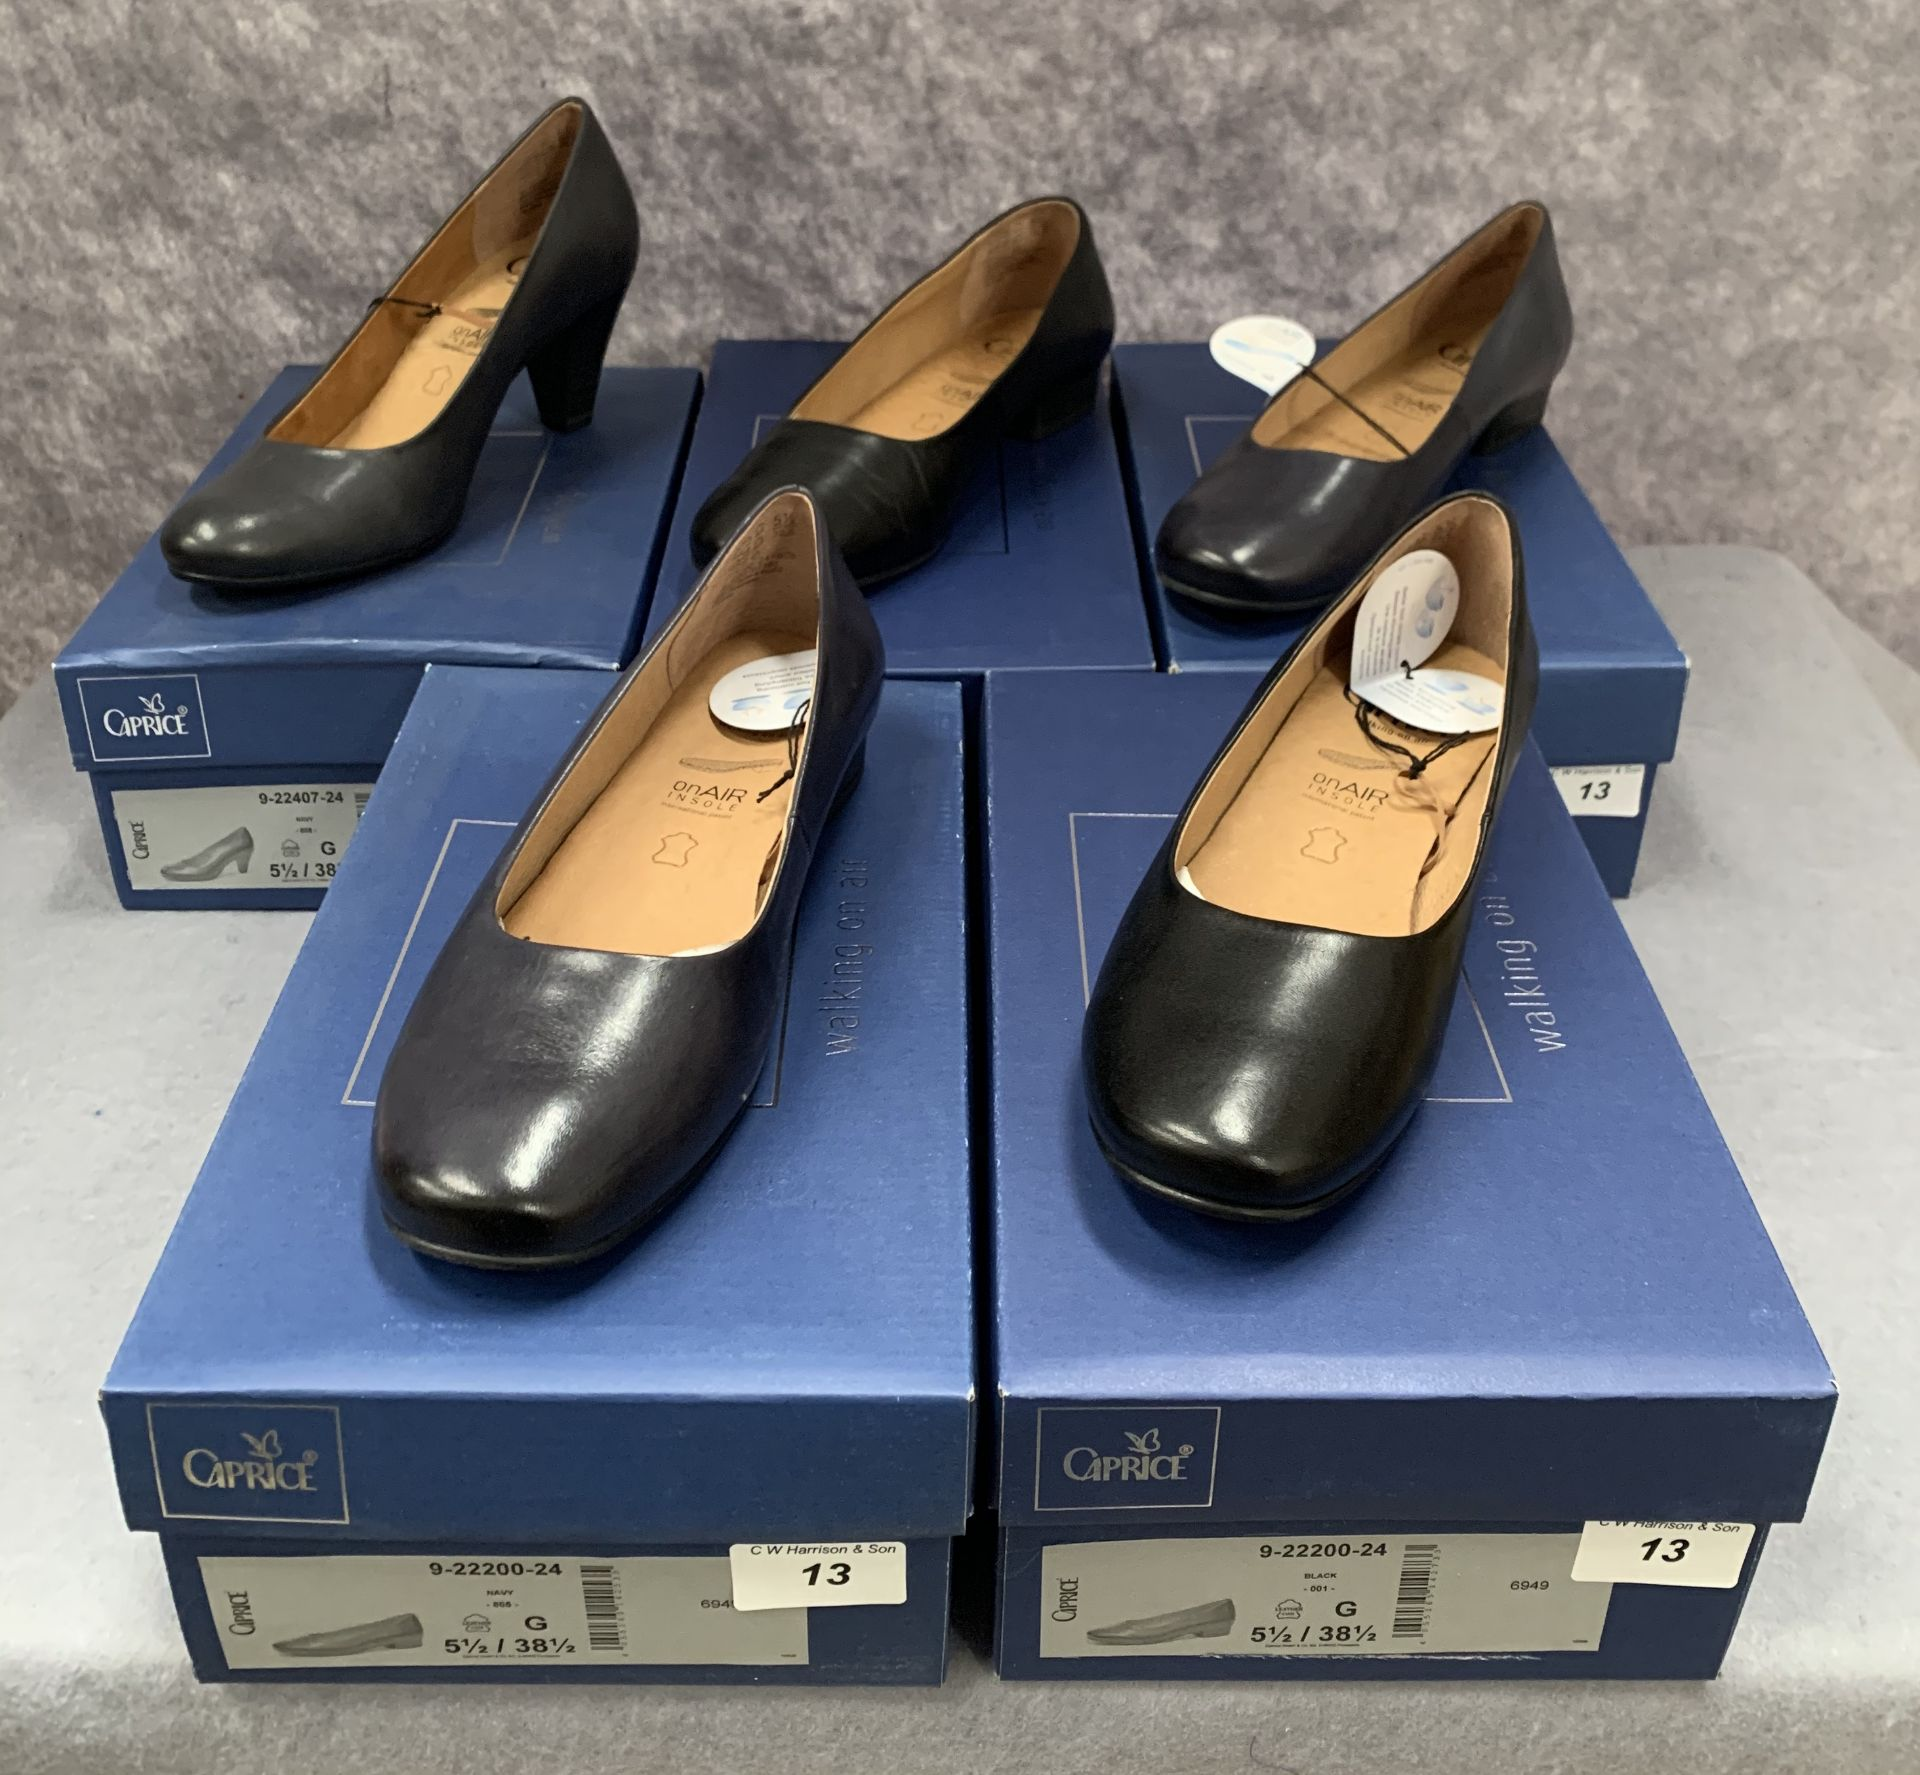 Lot 13 - Five pairs of Caprice ladies shoes in black (2) and navy (3), various styles, size 5½,